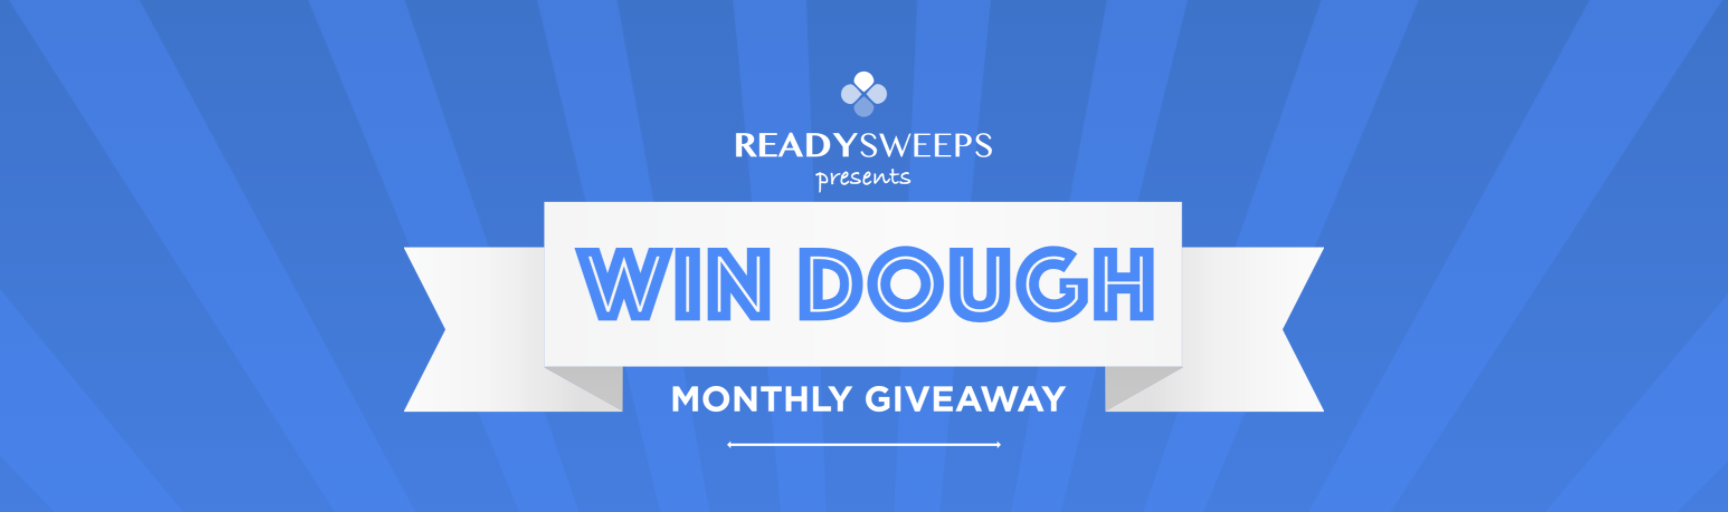 online contests, sweepstakes and giveaways - WIN DOUGH by READYsweeps